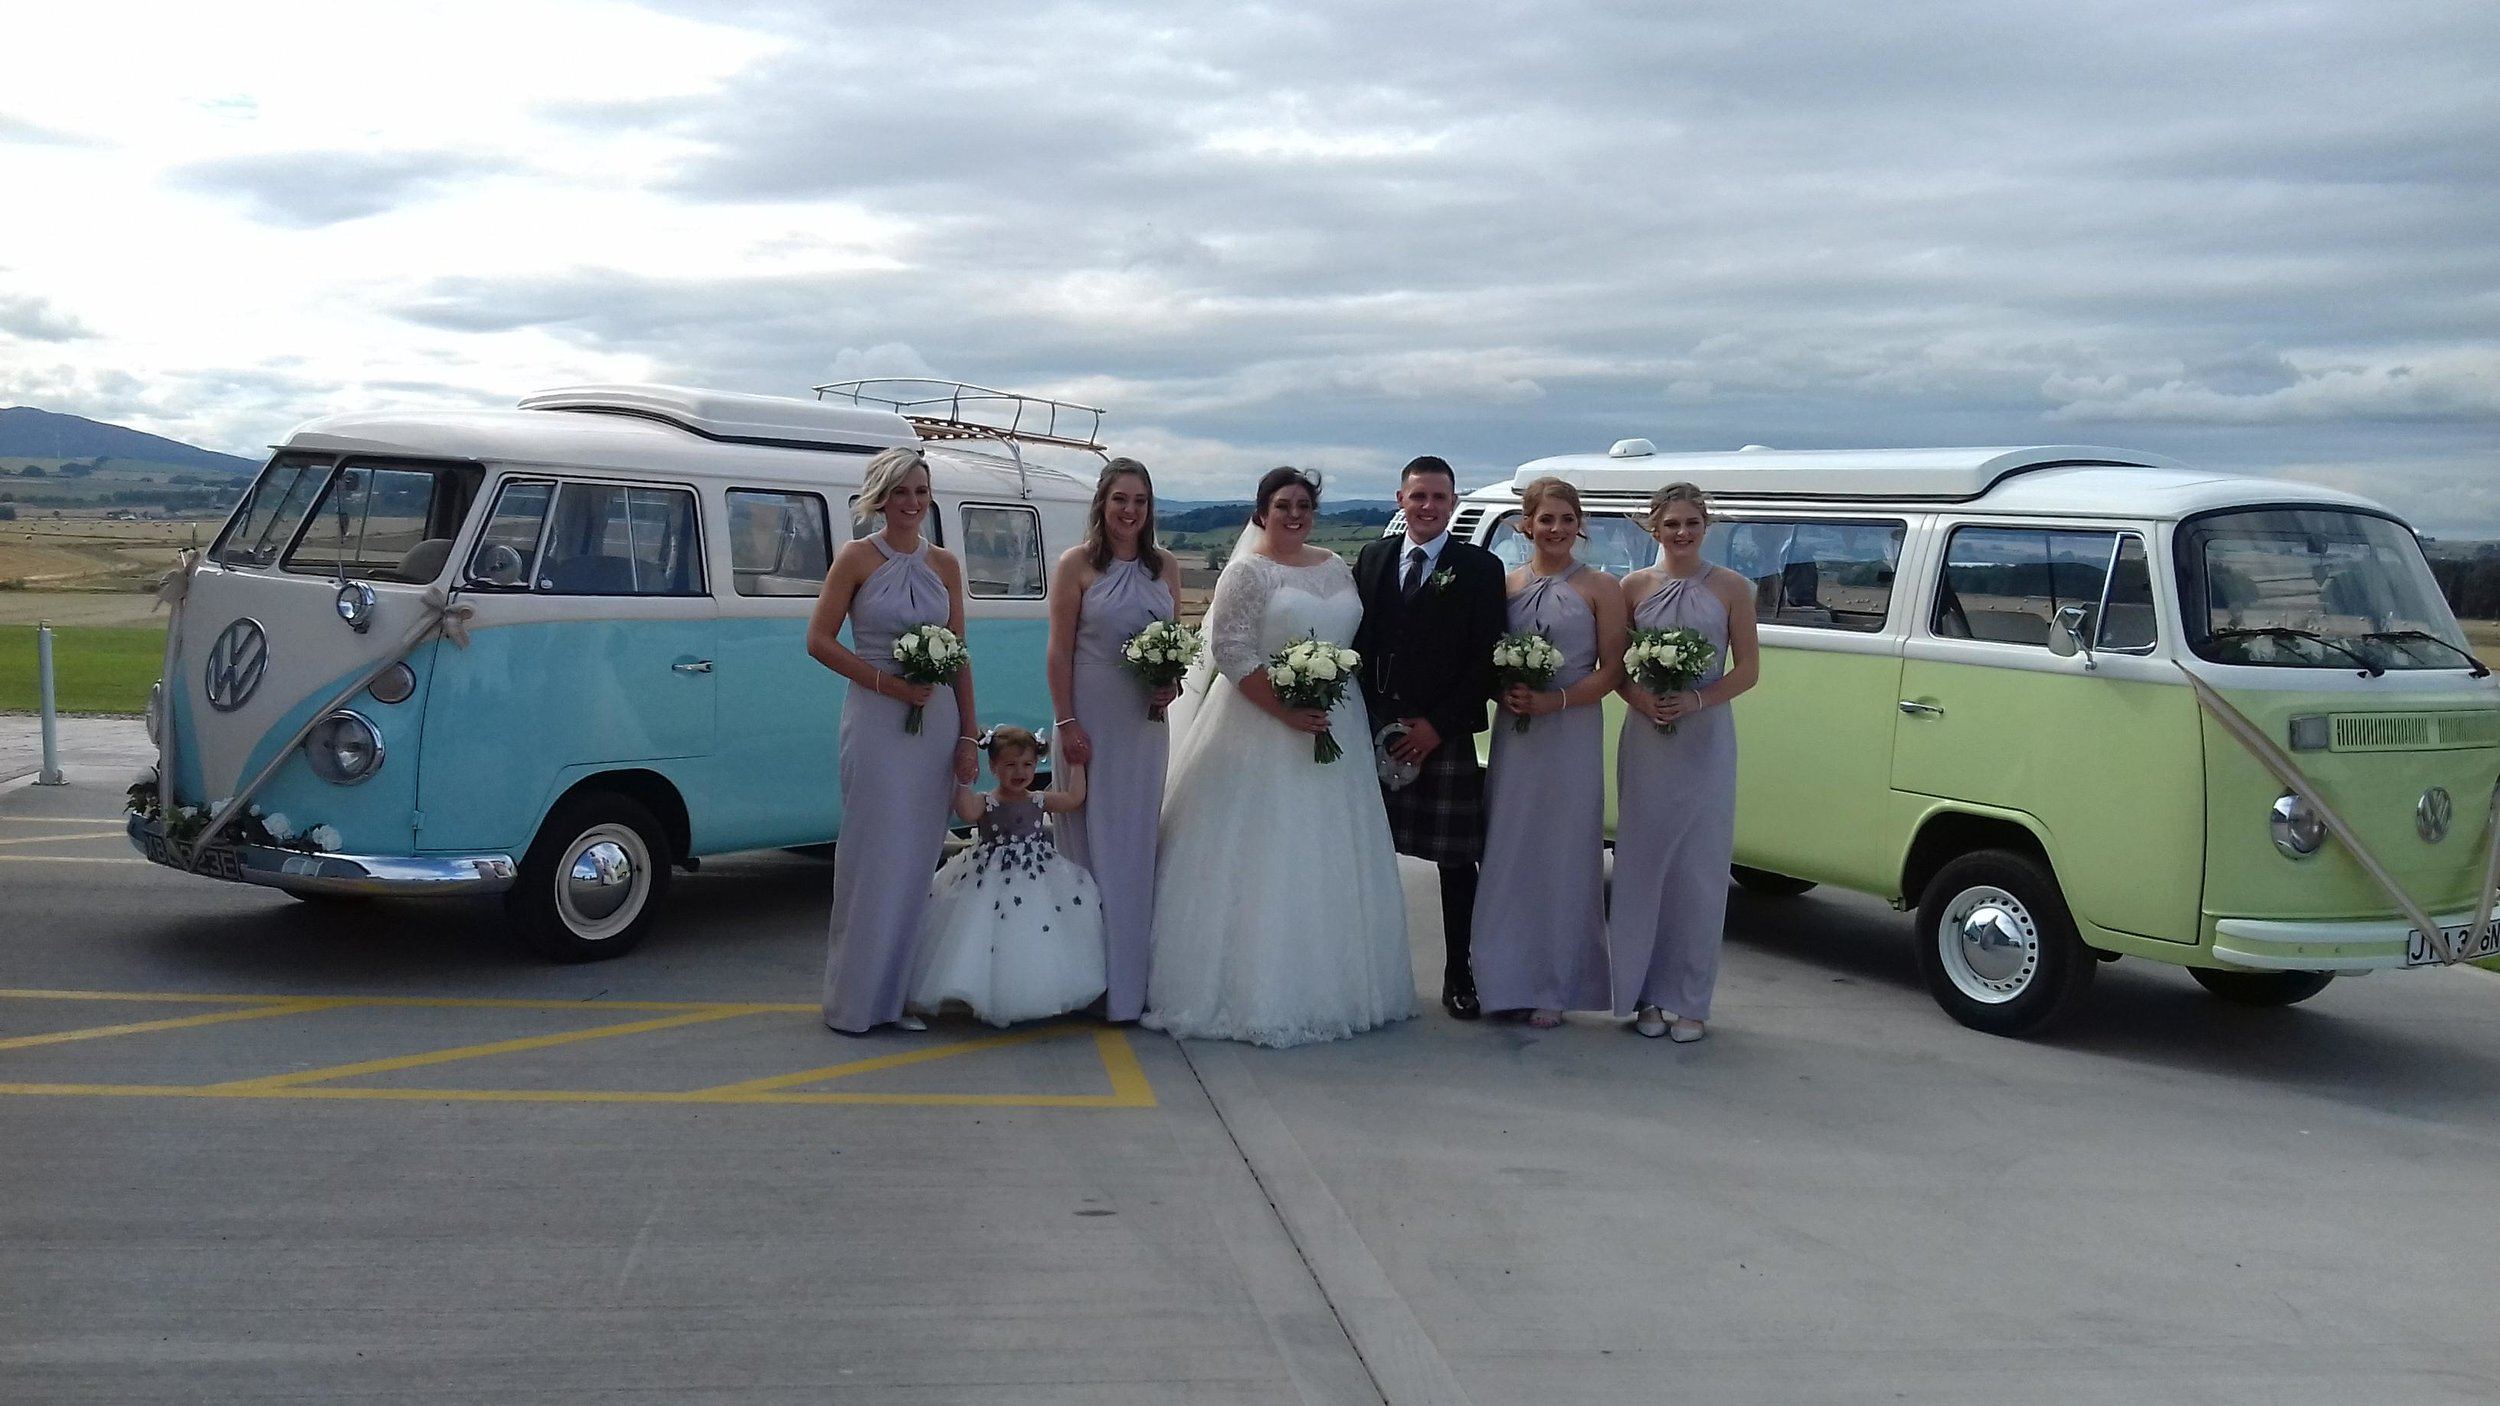 VW-wedding-campervan-scotland-2.jpg